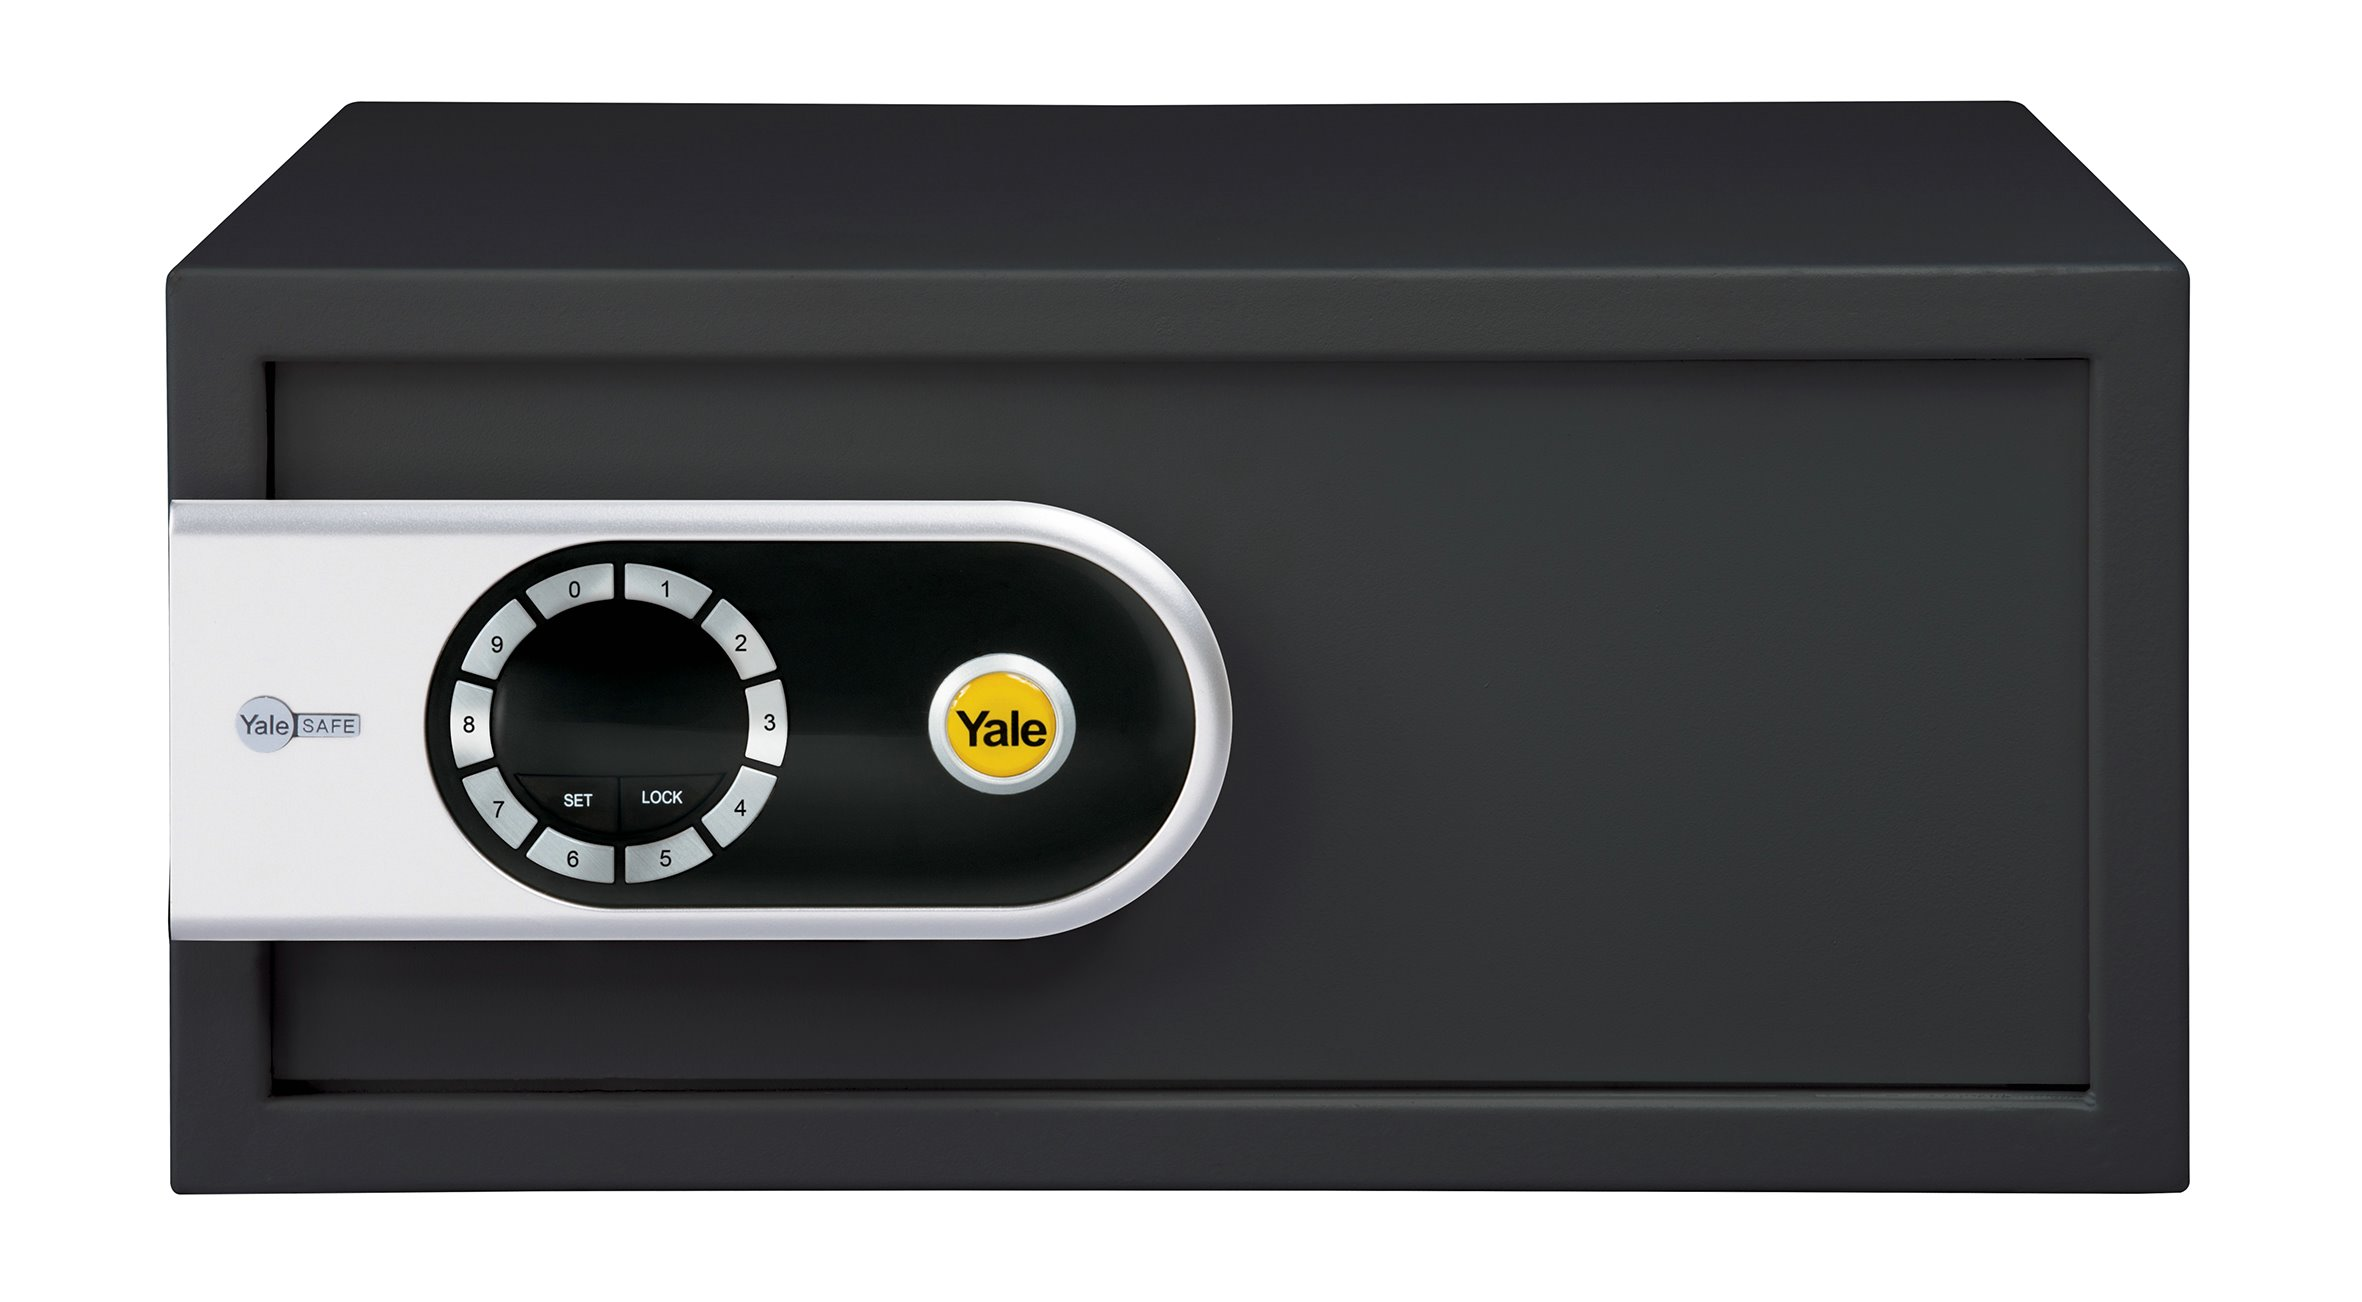 YLEL/200/EG7 - Yale Elite Digital Safes (Laptop)